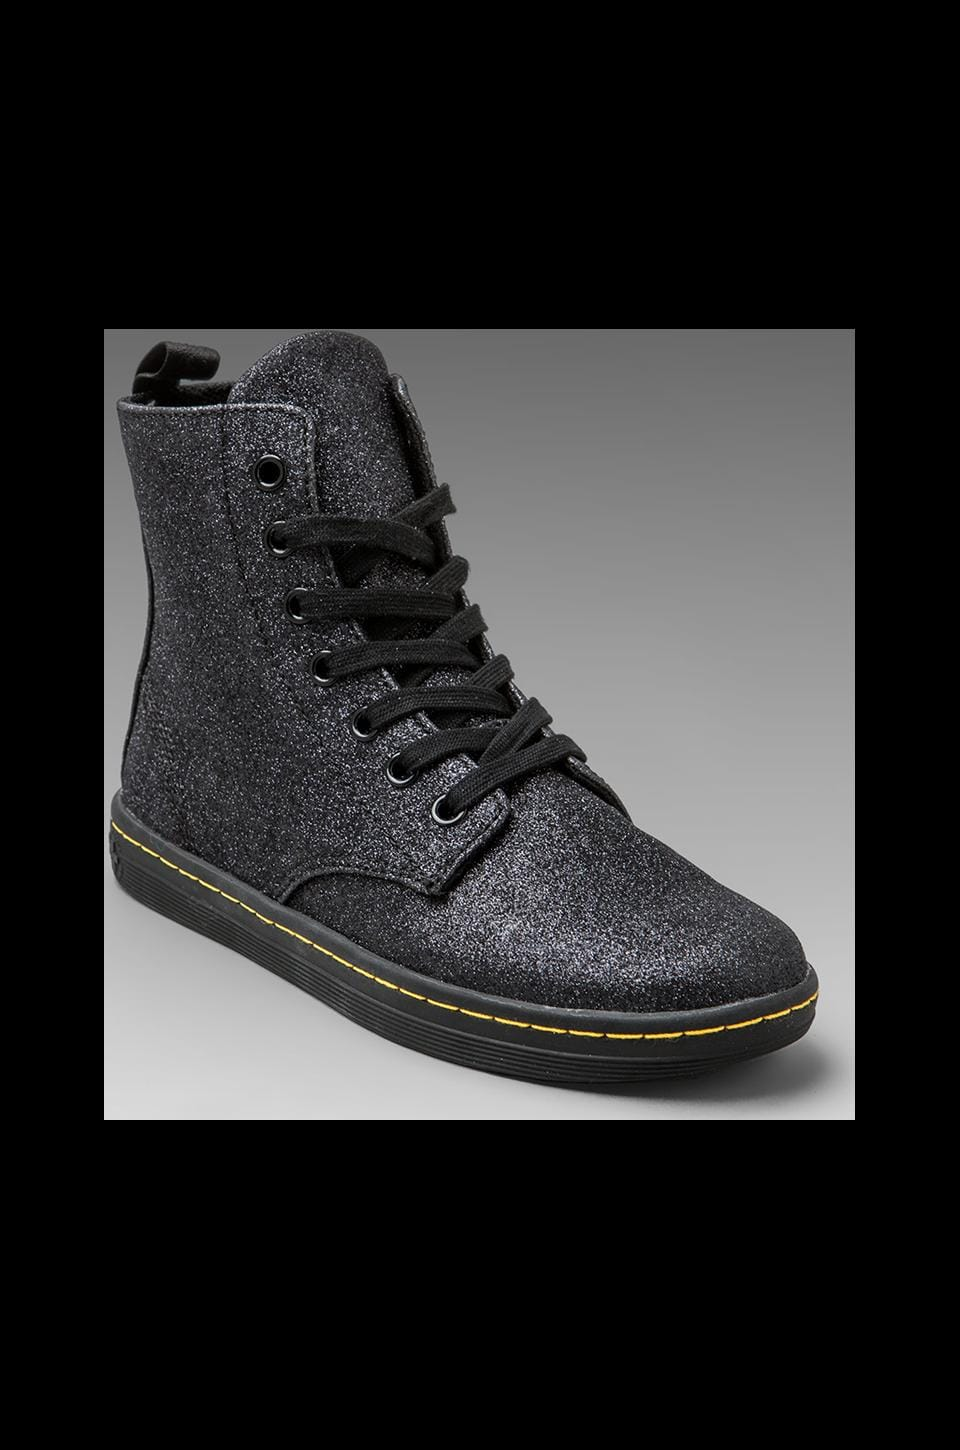 Dr. Martens Hackney 7-Eye Boot in Black Glitter